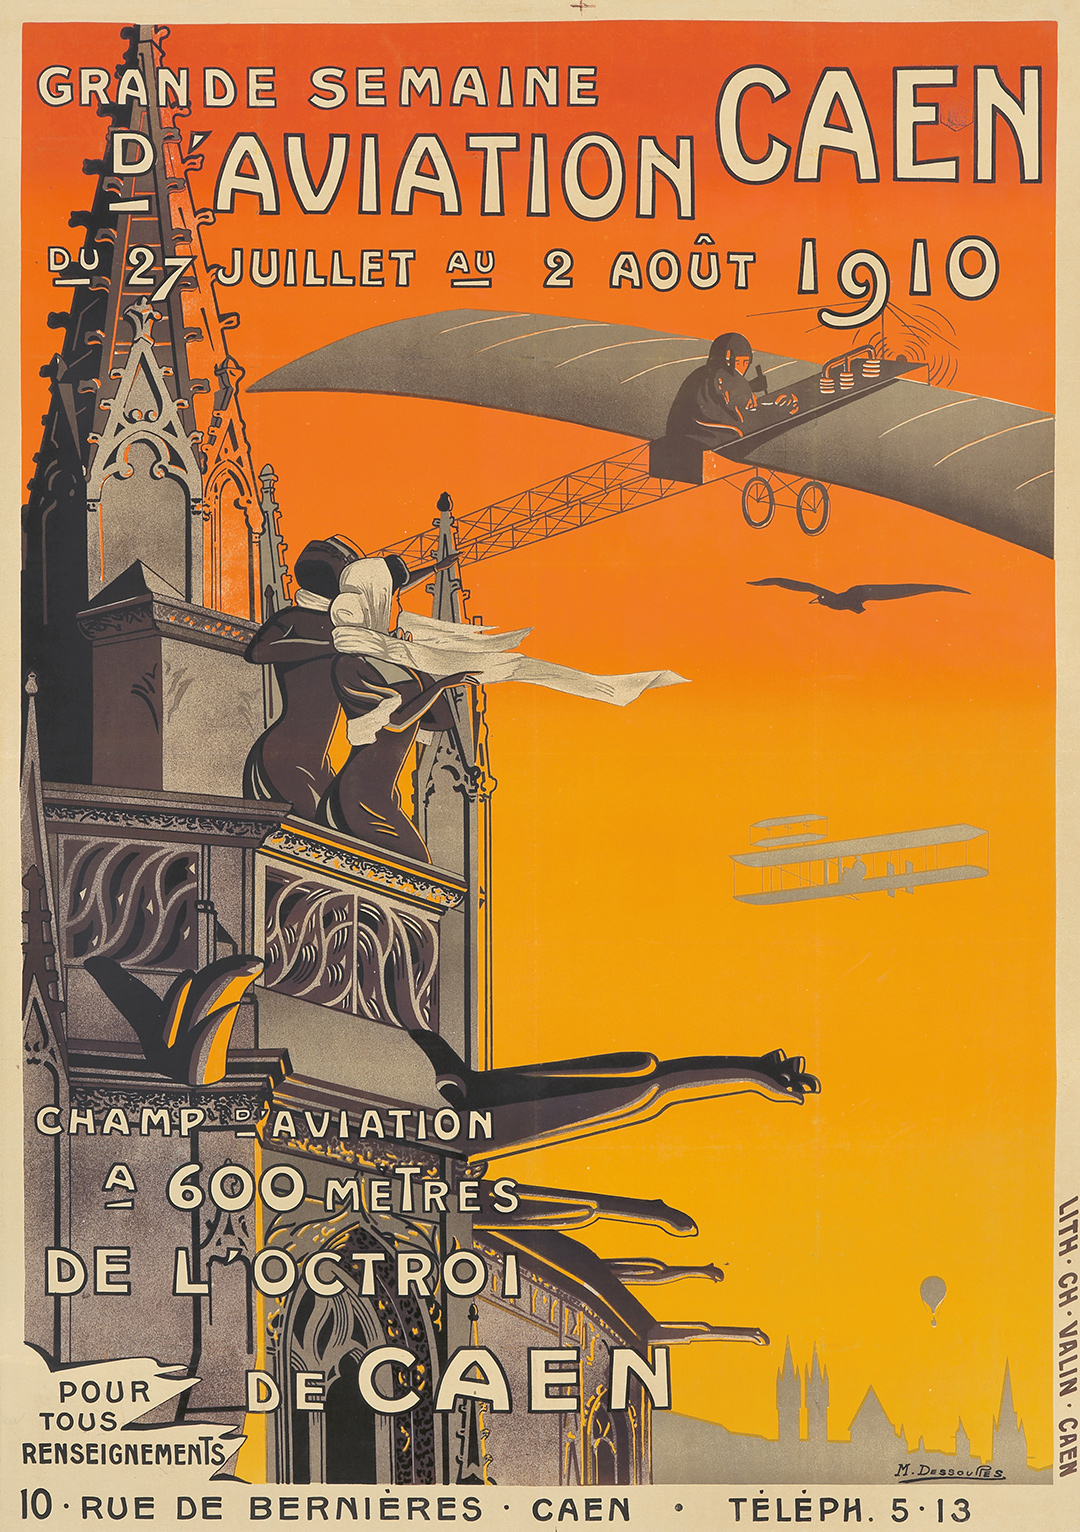 37. Semaine D'Aviation / Caen. 1910. ($8,400)